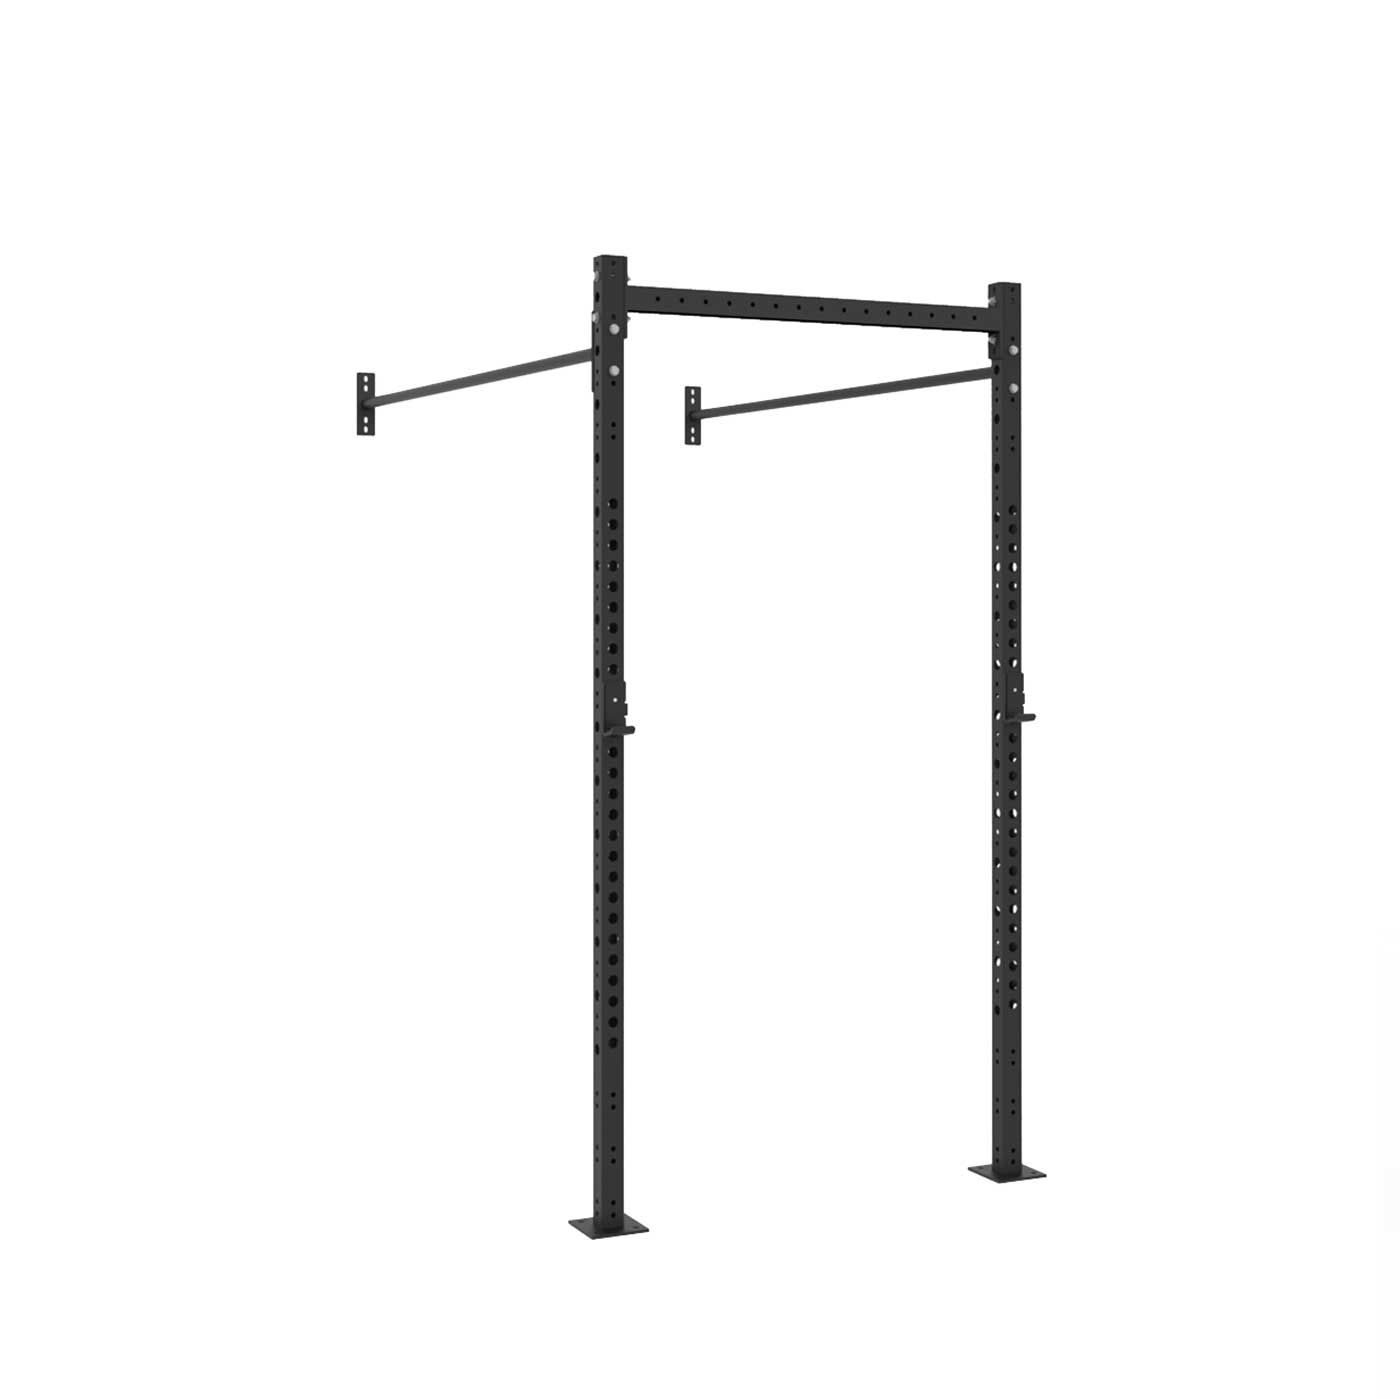 4x6 Wall-Mount Pull-up Rig - Out of Stock